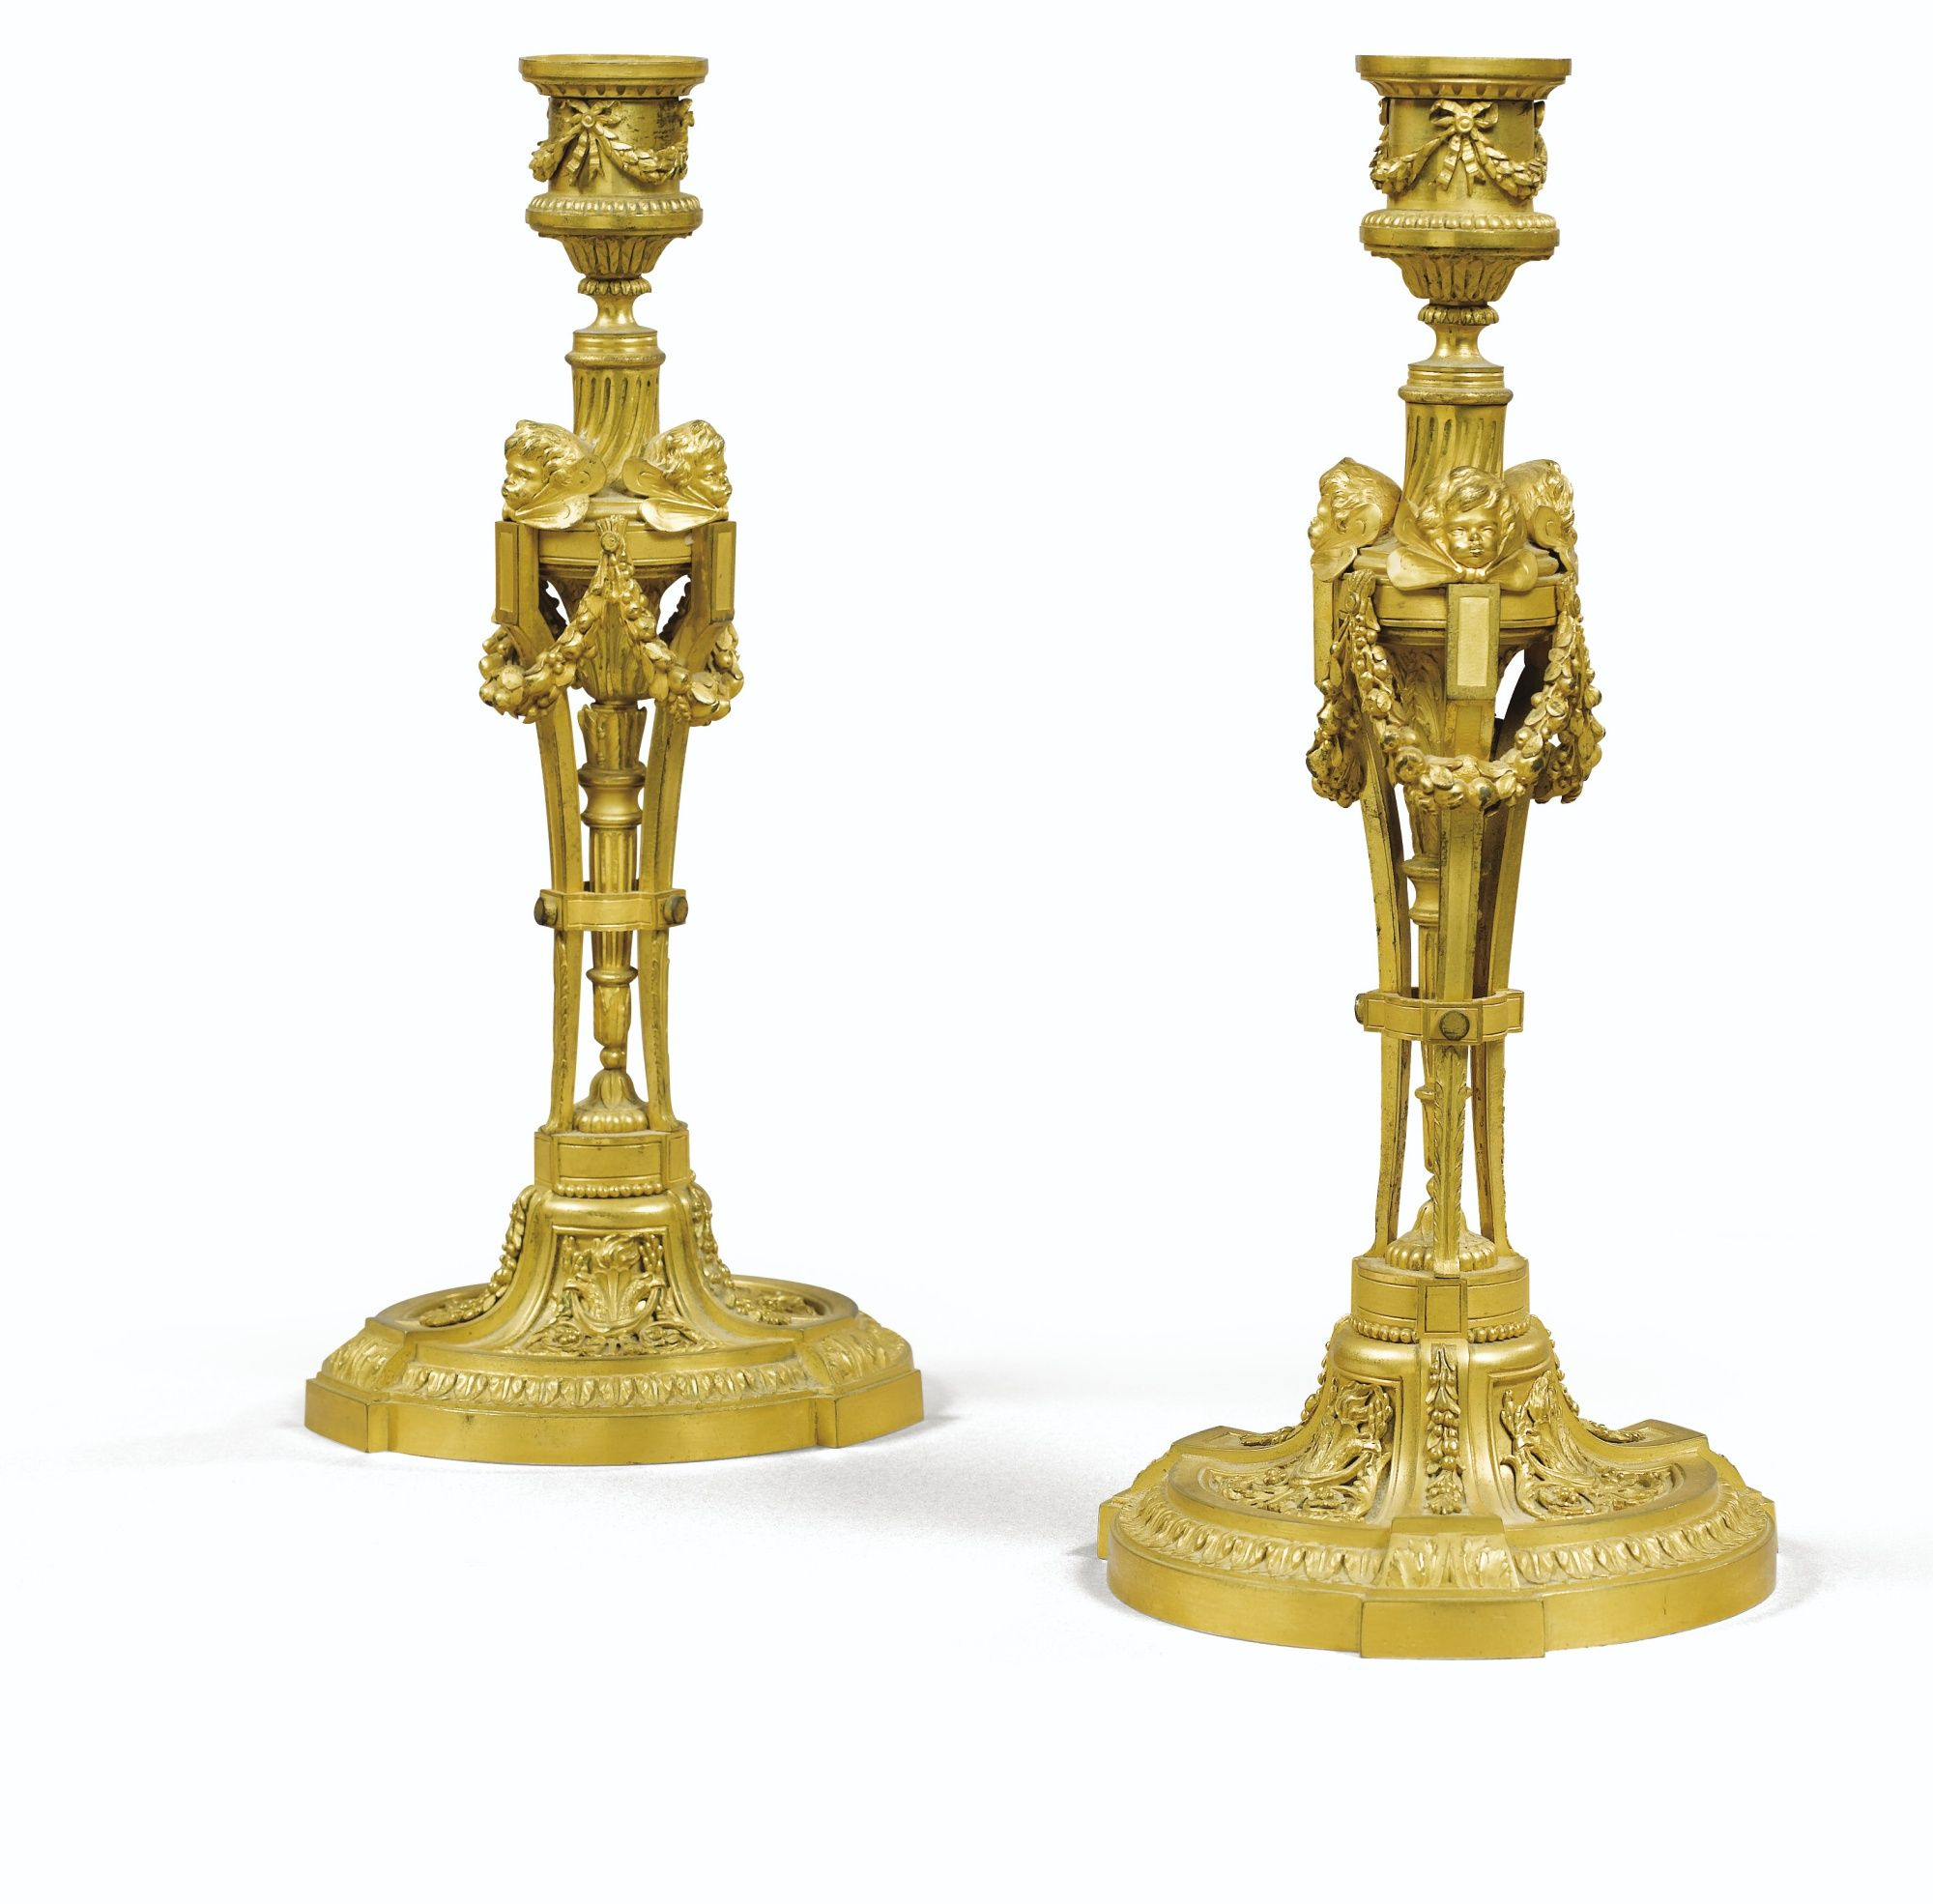 date unspecified A PAIR OF GILTBRONZE CANDLESTICKS, LOUIS XVI ...